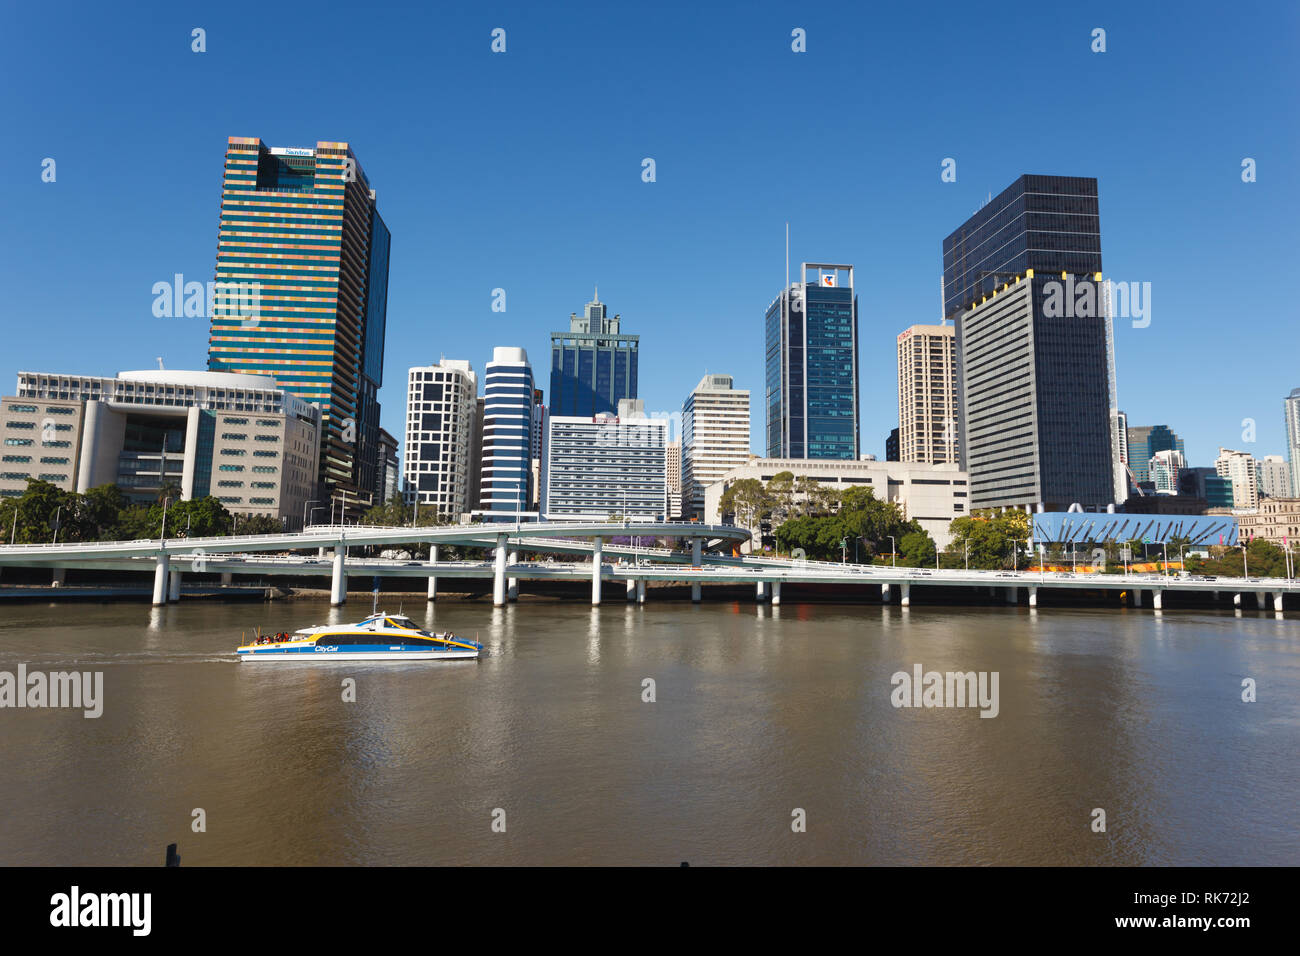 Ferry passes by city of Brisbane high rises and elevated roadway on a sunny day in Australia - Stock Image